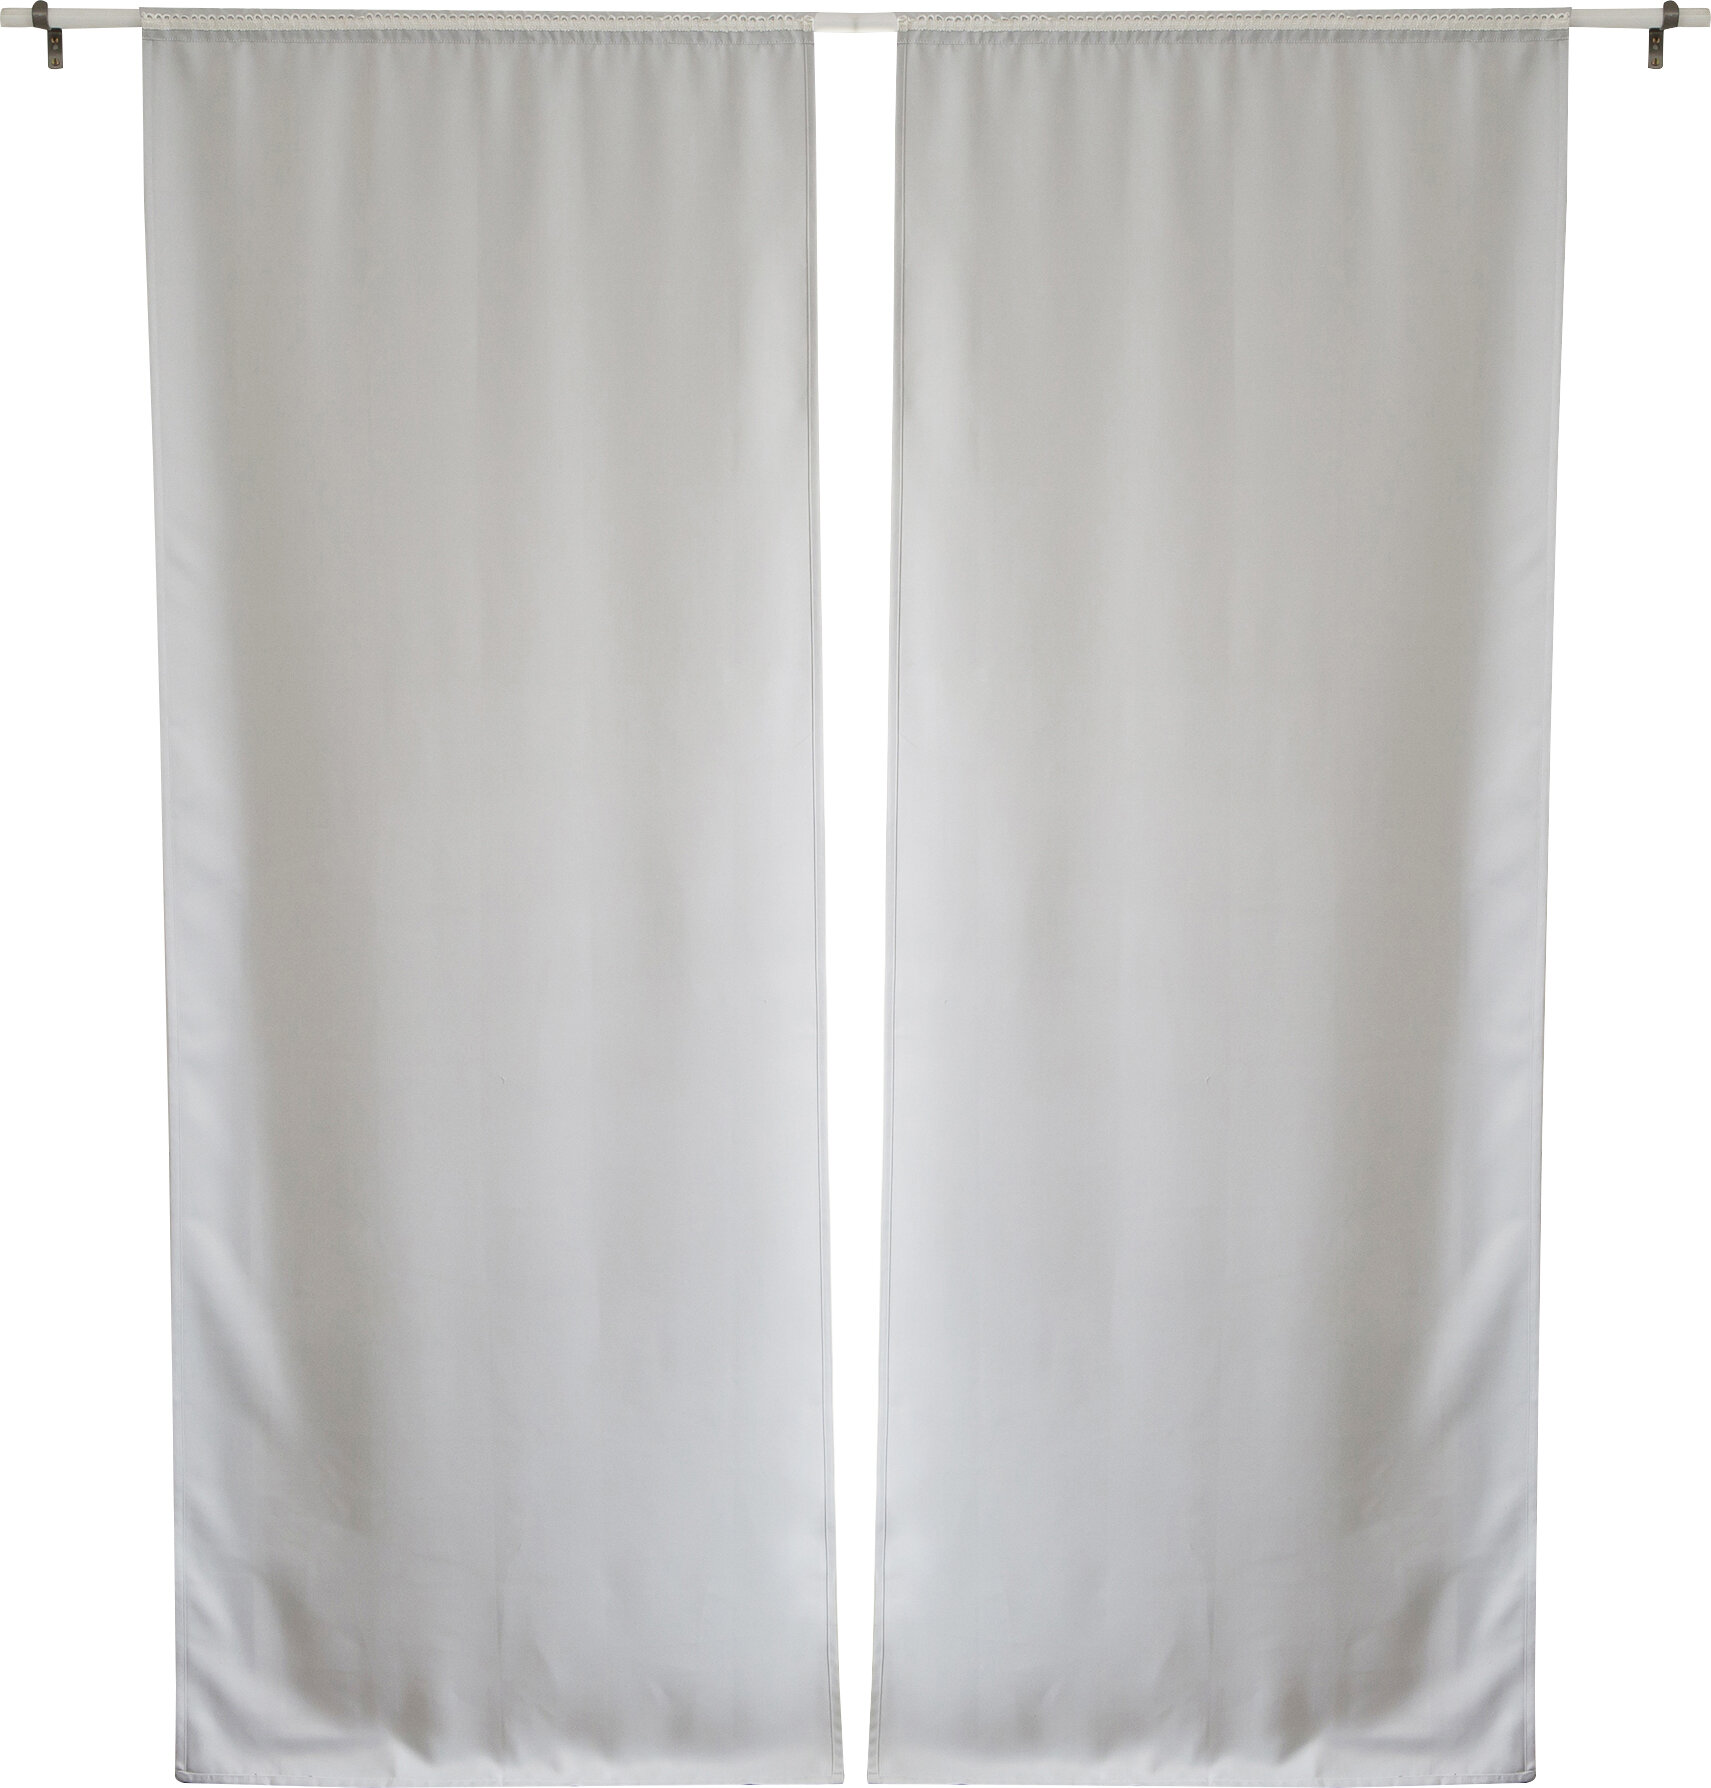 concept arelackout used drapes blackout size are what curtain imposing interesting of curtains energy and liners liner cay in the popcorn made full solid drape efficient from fresh for images